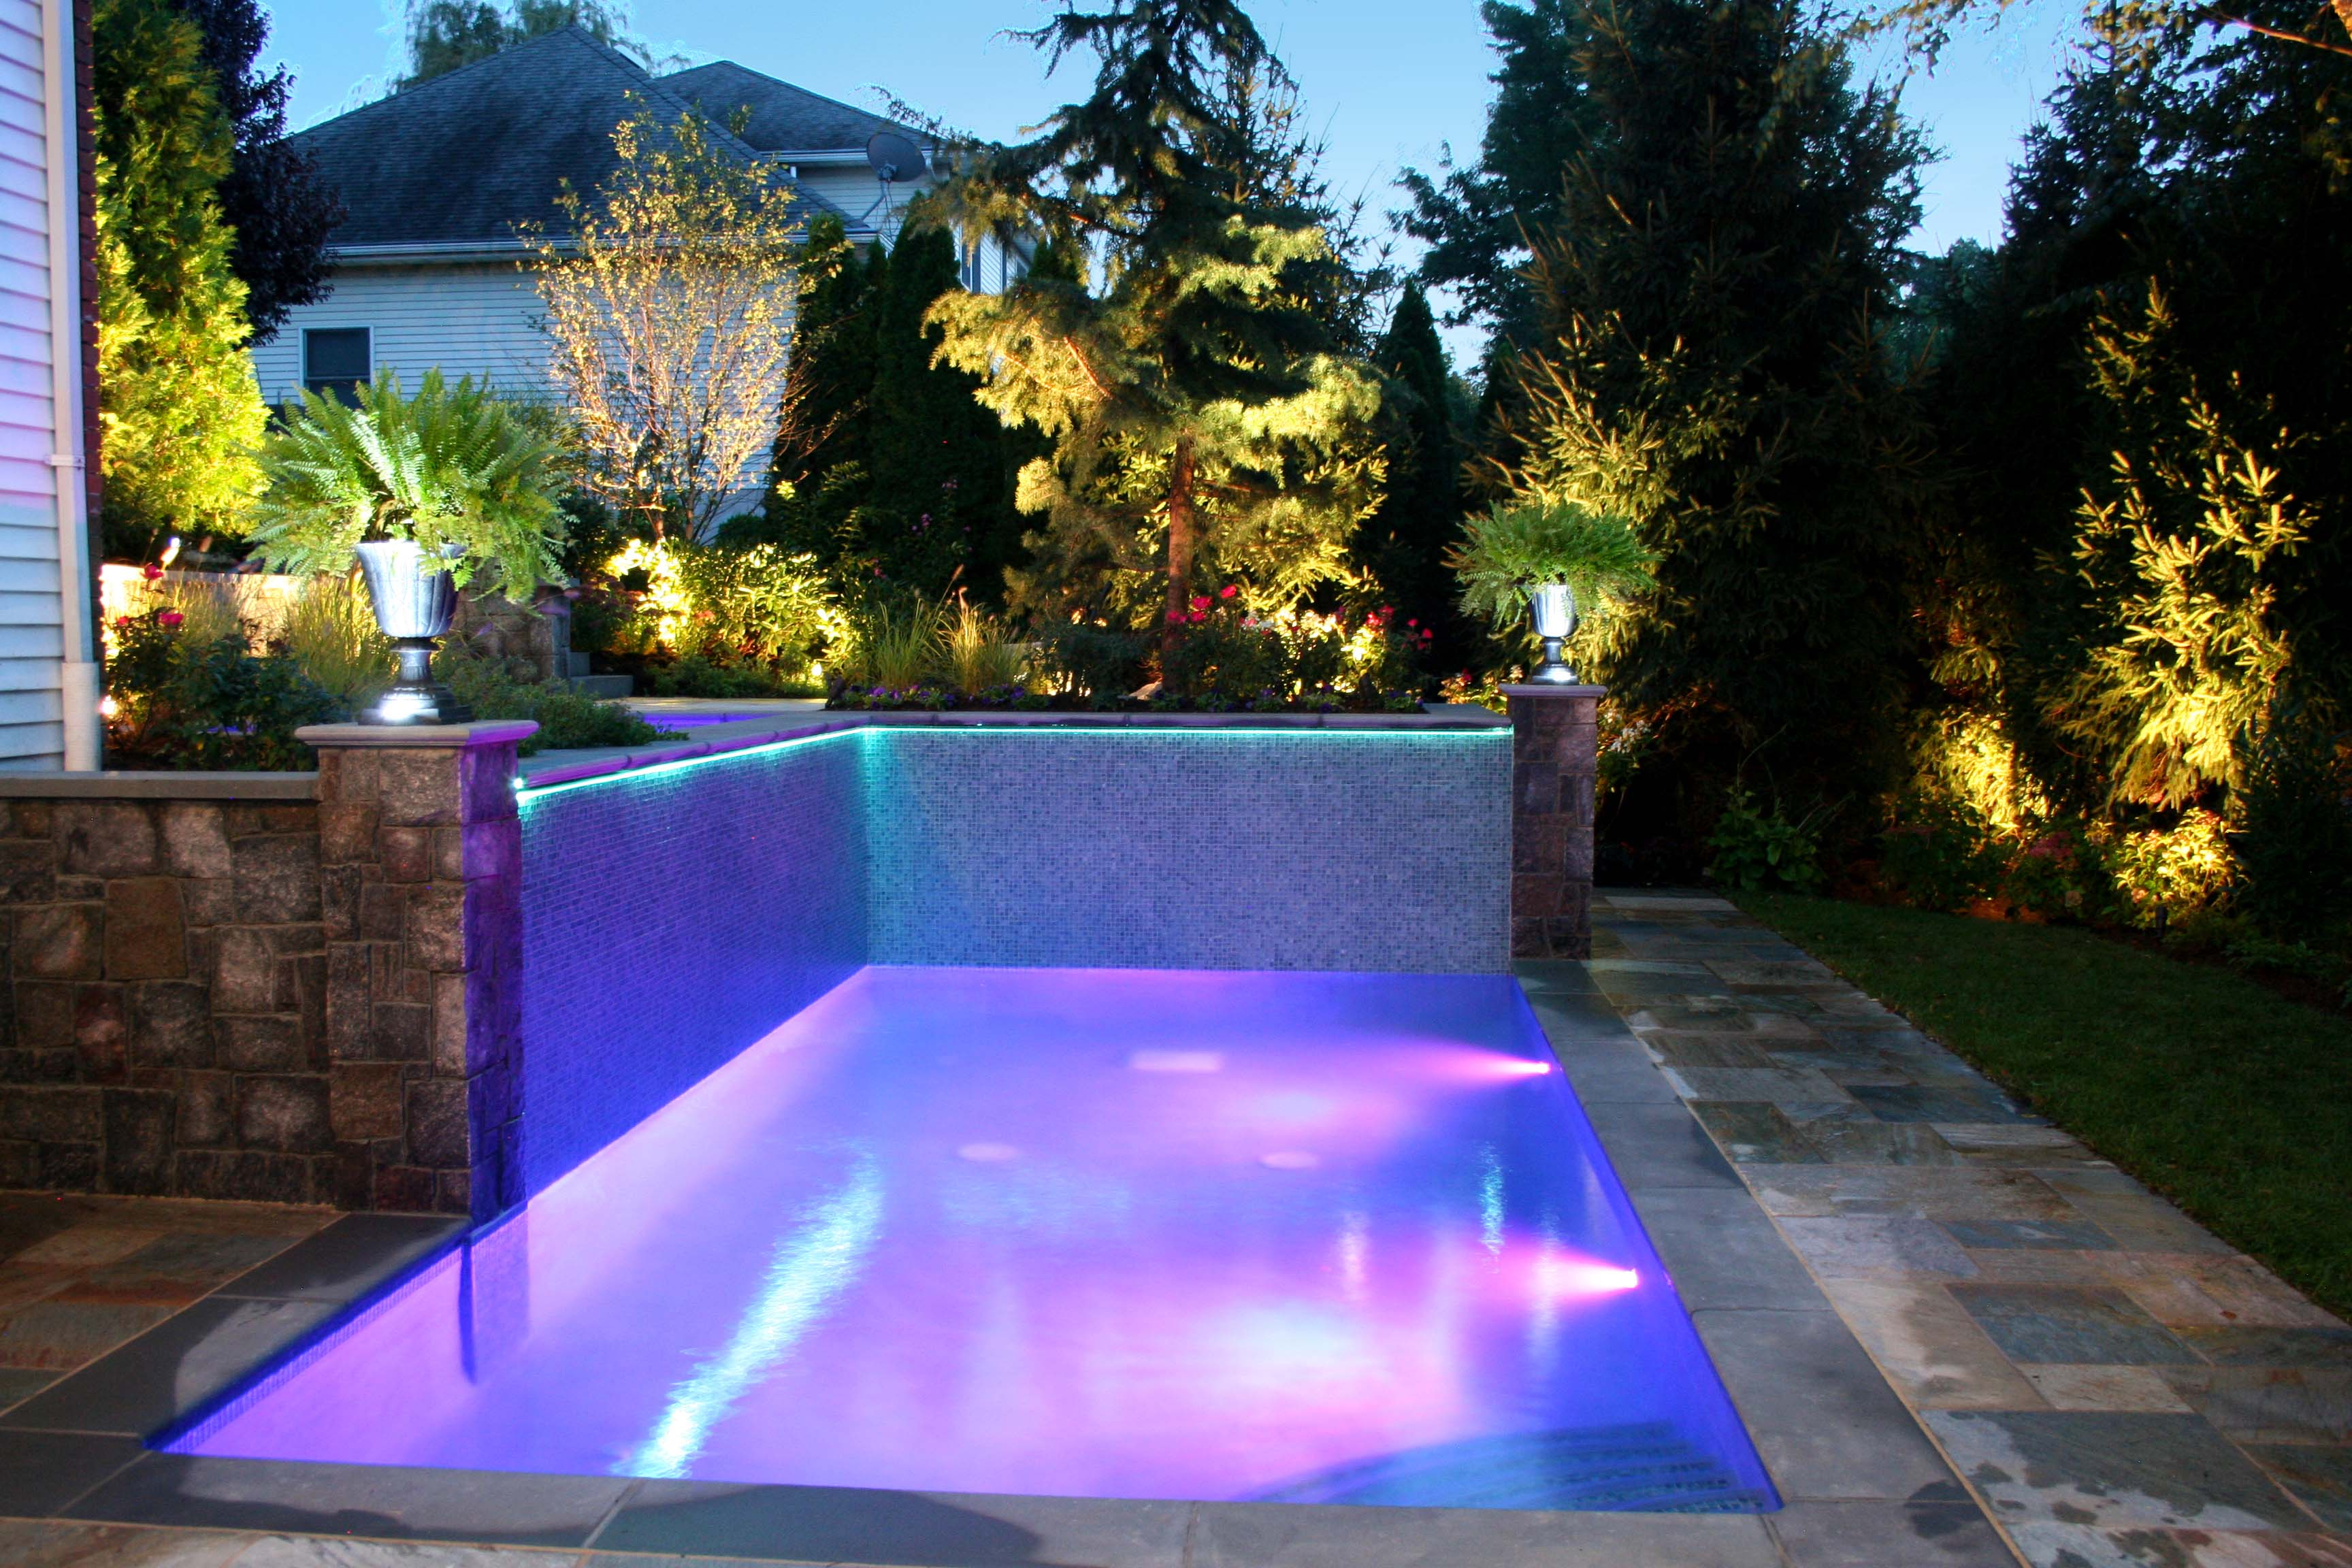 cool lighting of small rectangular pool floating swimming pool fountain water - Rectangle Pool With Water Feature